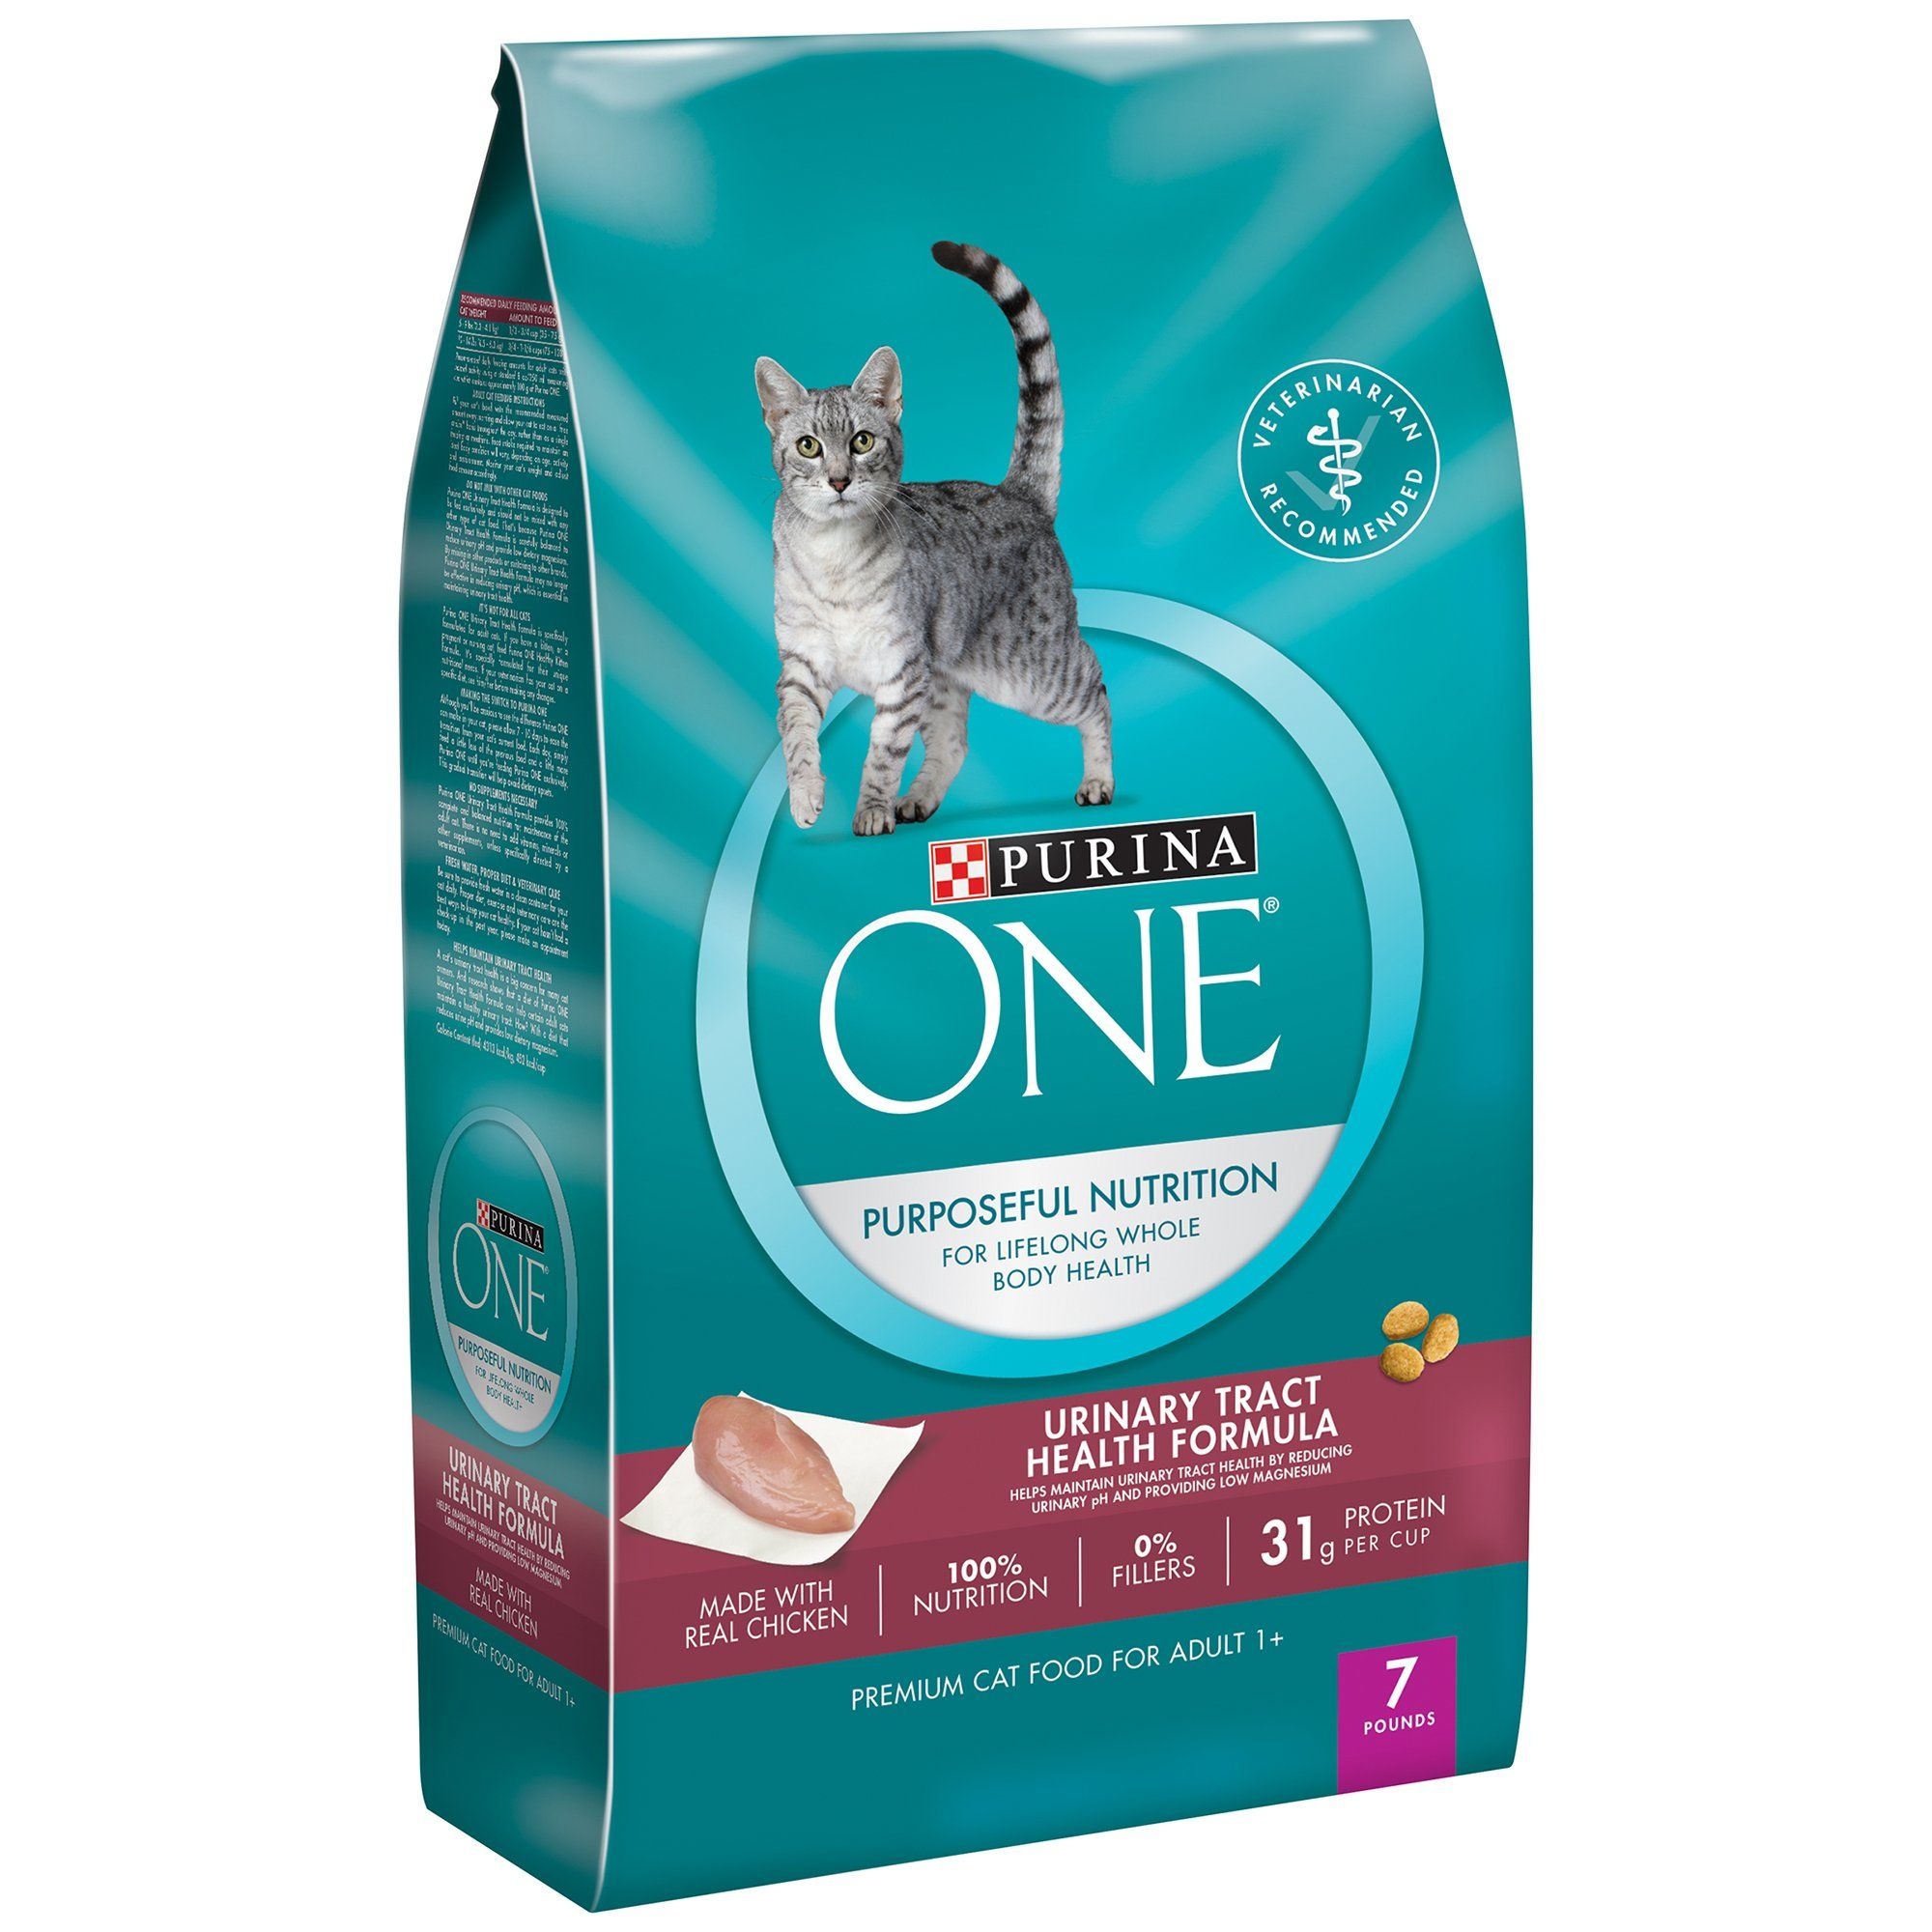 Purina One Special Care Urinary Tract Health Formula Cat Food 7